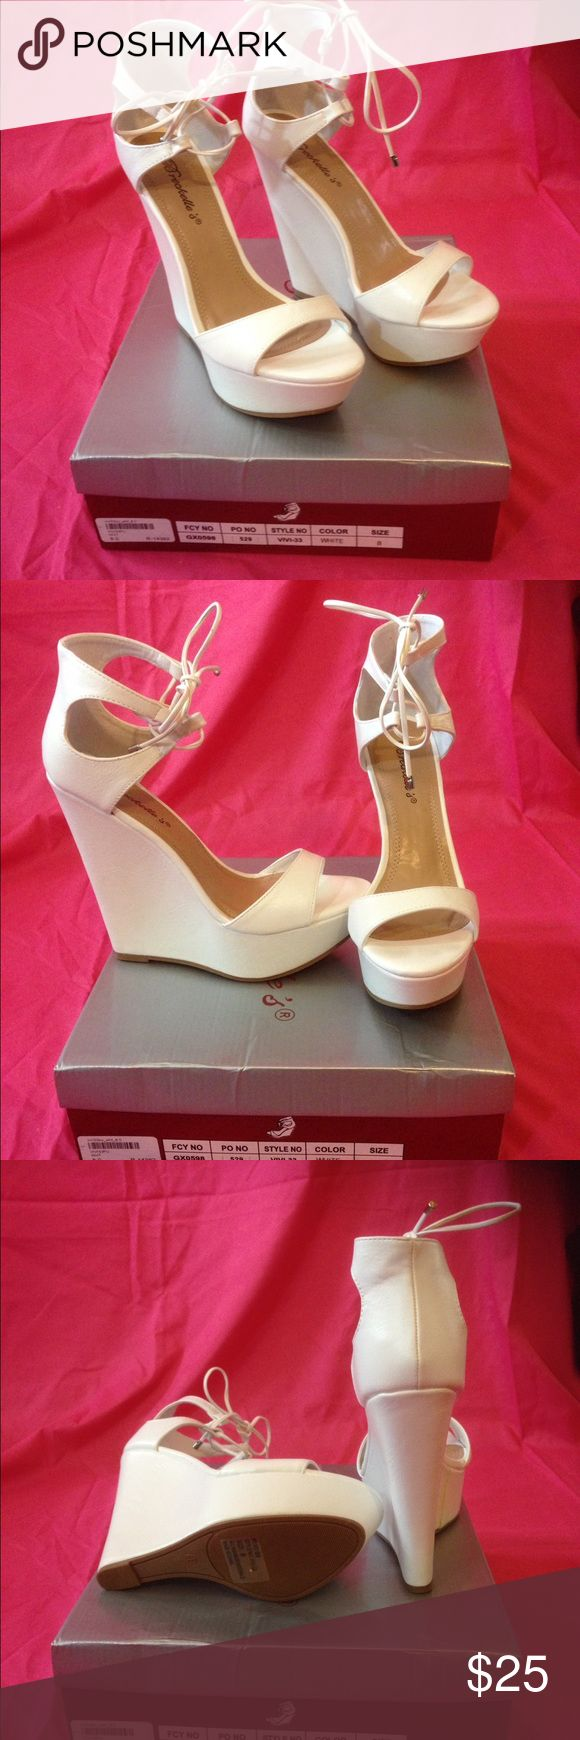 Breckelle's White Wedge Brand New with Box! Brand new, never worn! Breckelle's white wedge heels! Shoes Wedges